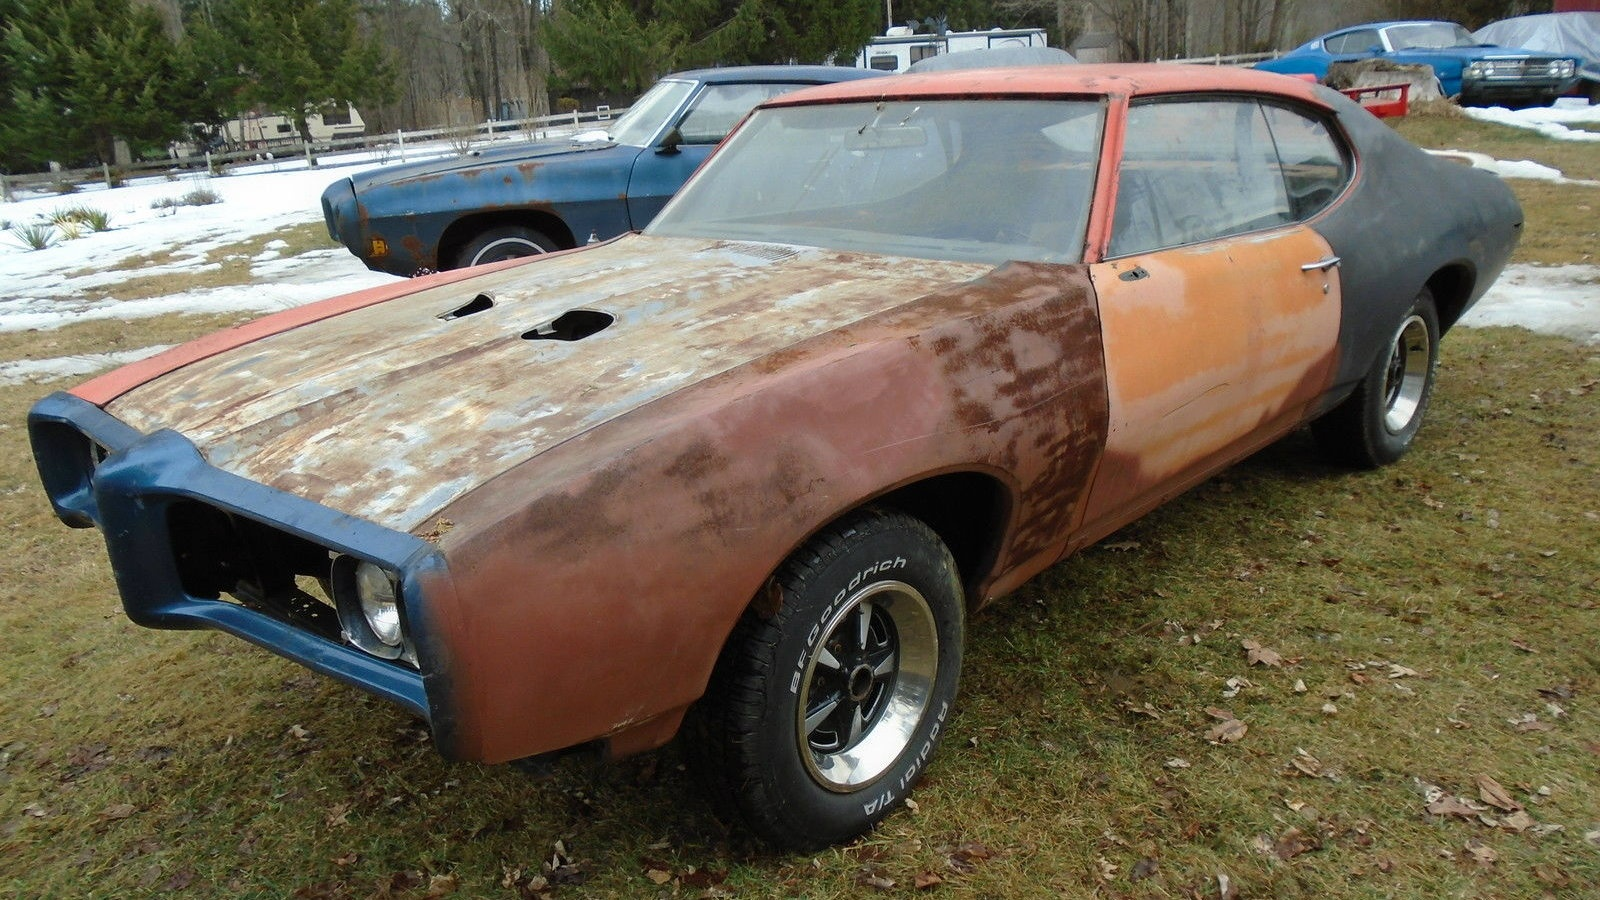 gto project for sale Pontiac gto find classic cars for sale locally in canada - camaro, corvette, ford, cadillac, mustang and more on kijiji, canada's #1 local classifieds.